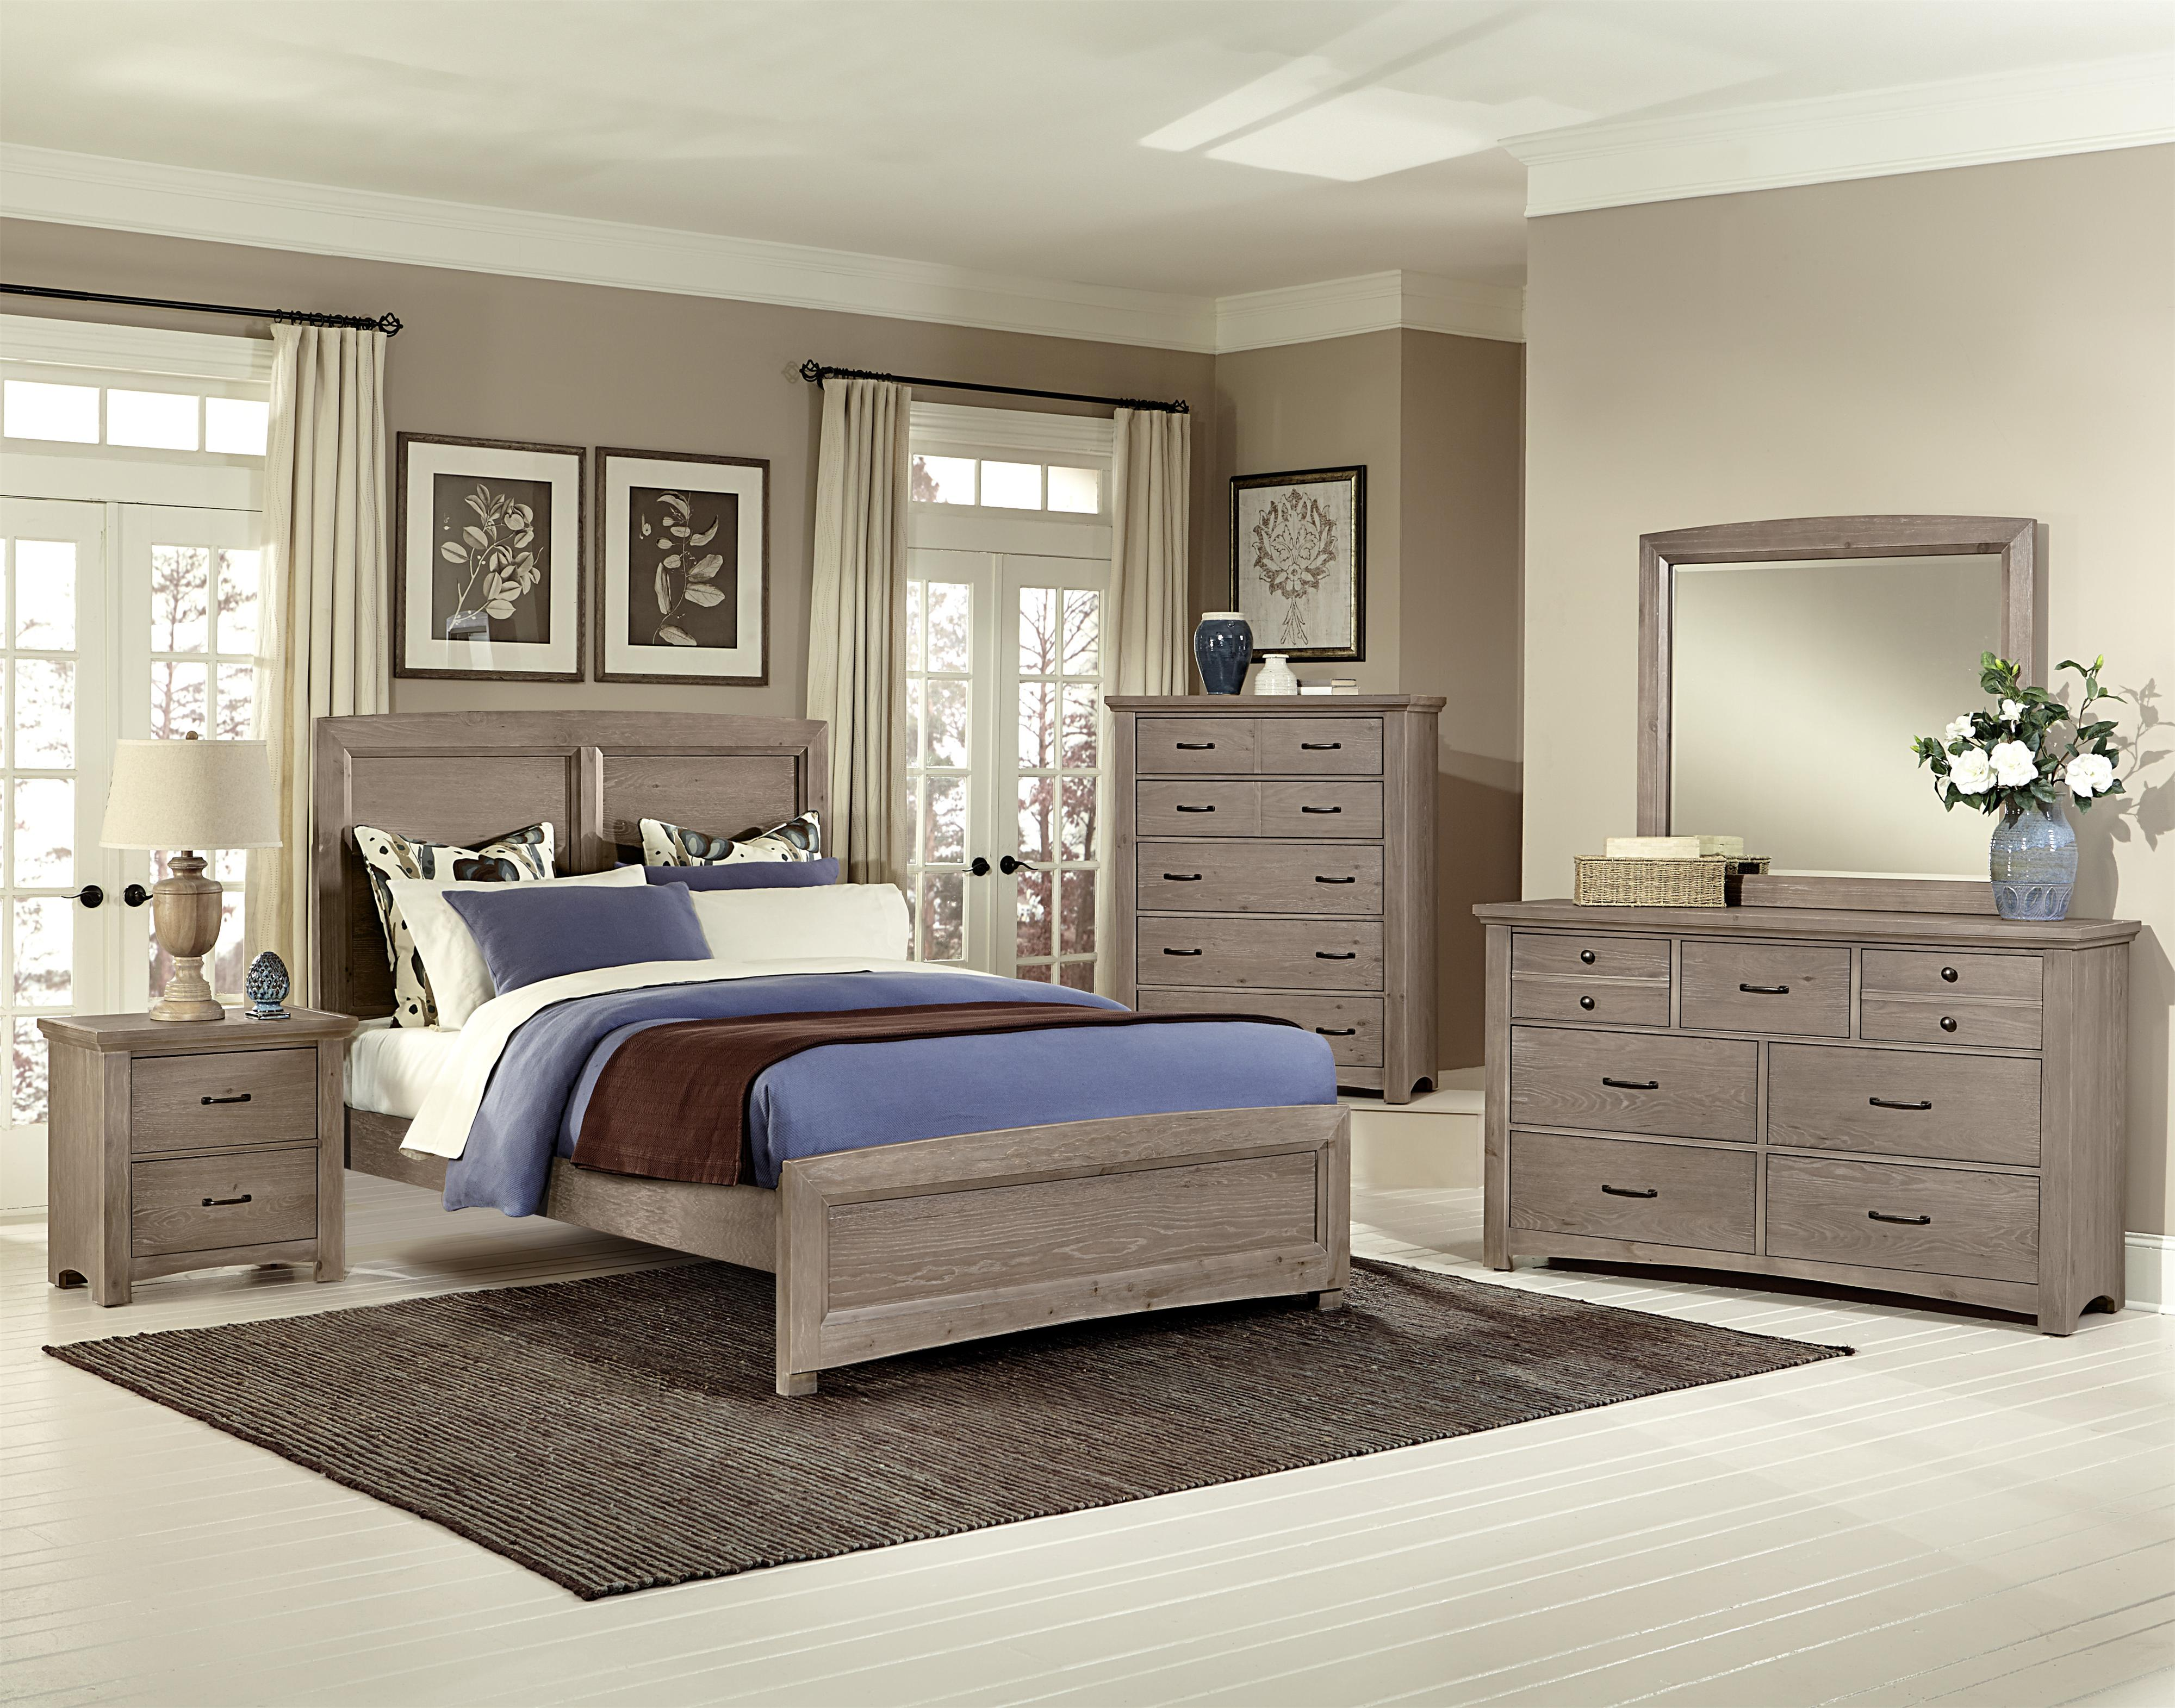 Vaughan Bassett Transitions Queen Bedroom Group - Item Number: BB61 Q Bedroom Group 1